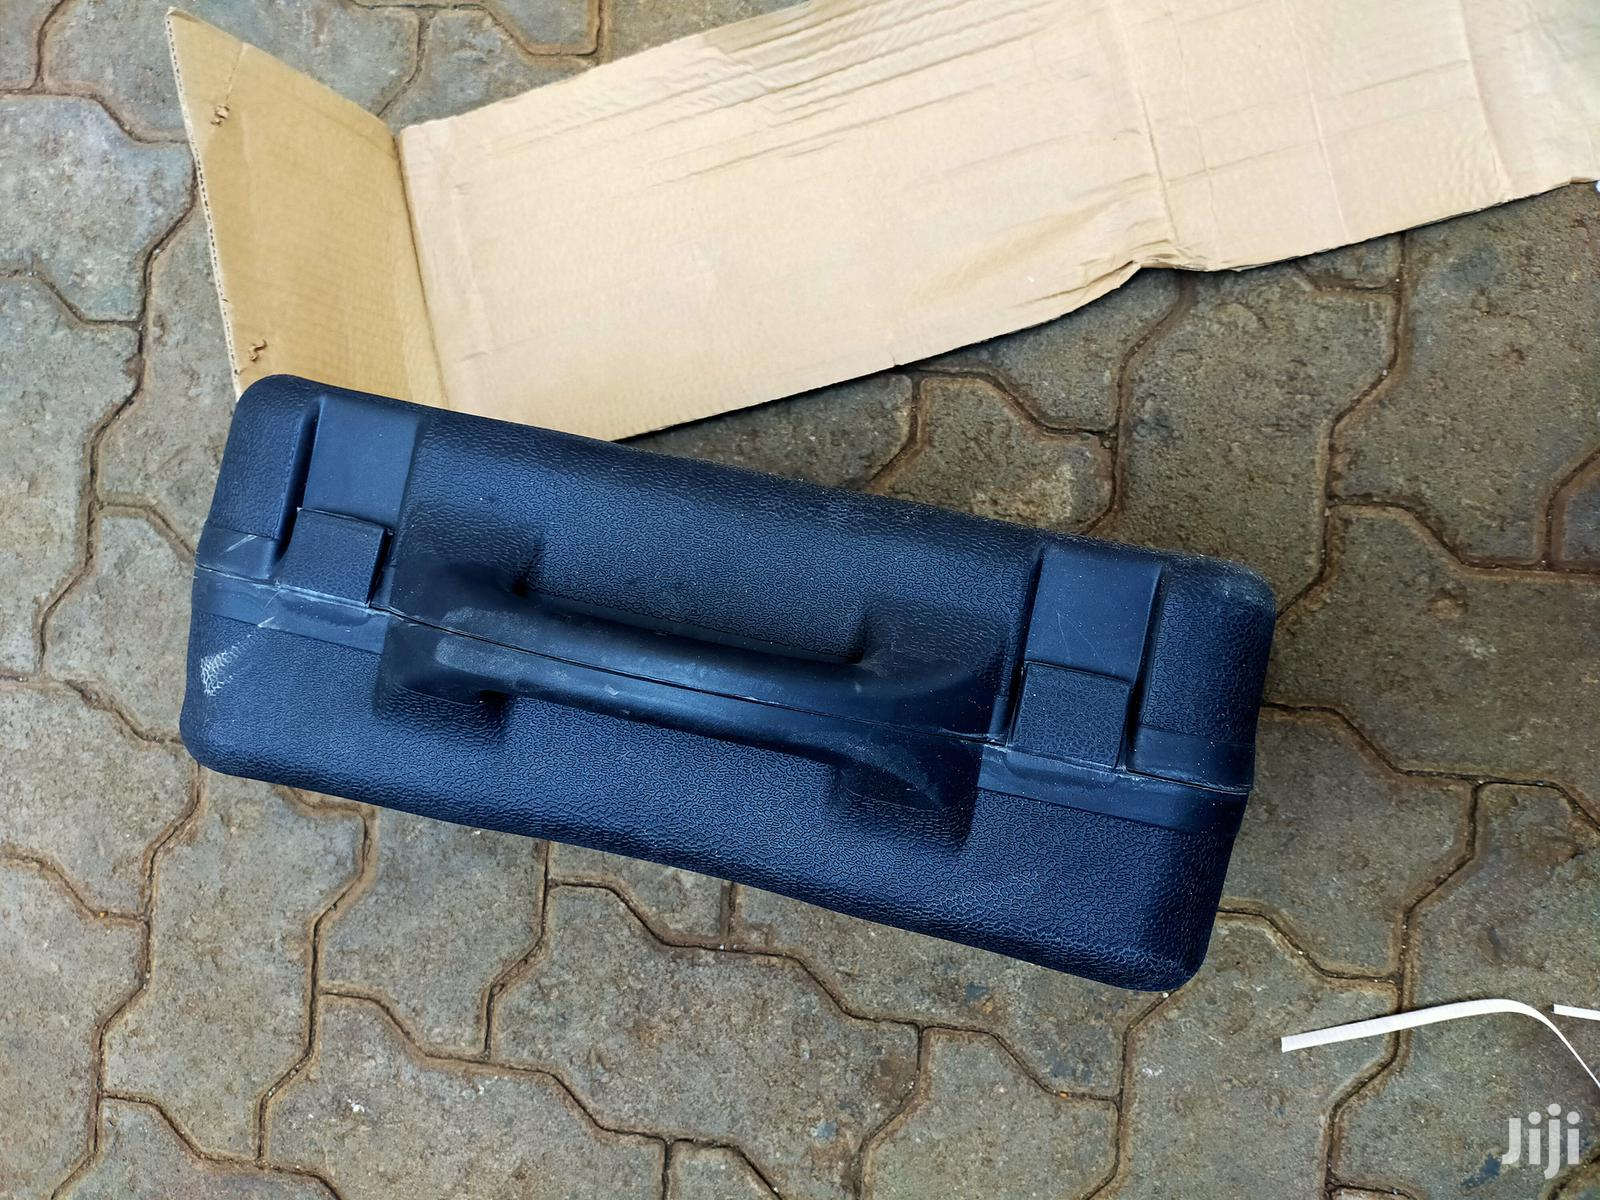 30 Kg Dumbell Set Adjustable Heavy Duty With Briefcase Porta | Sports Equipment for sale in Nairobi Central, Nairobi, Kenya